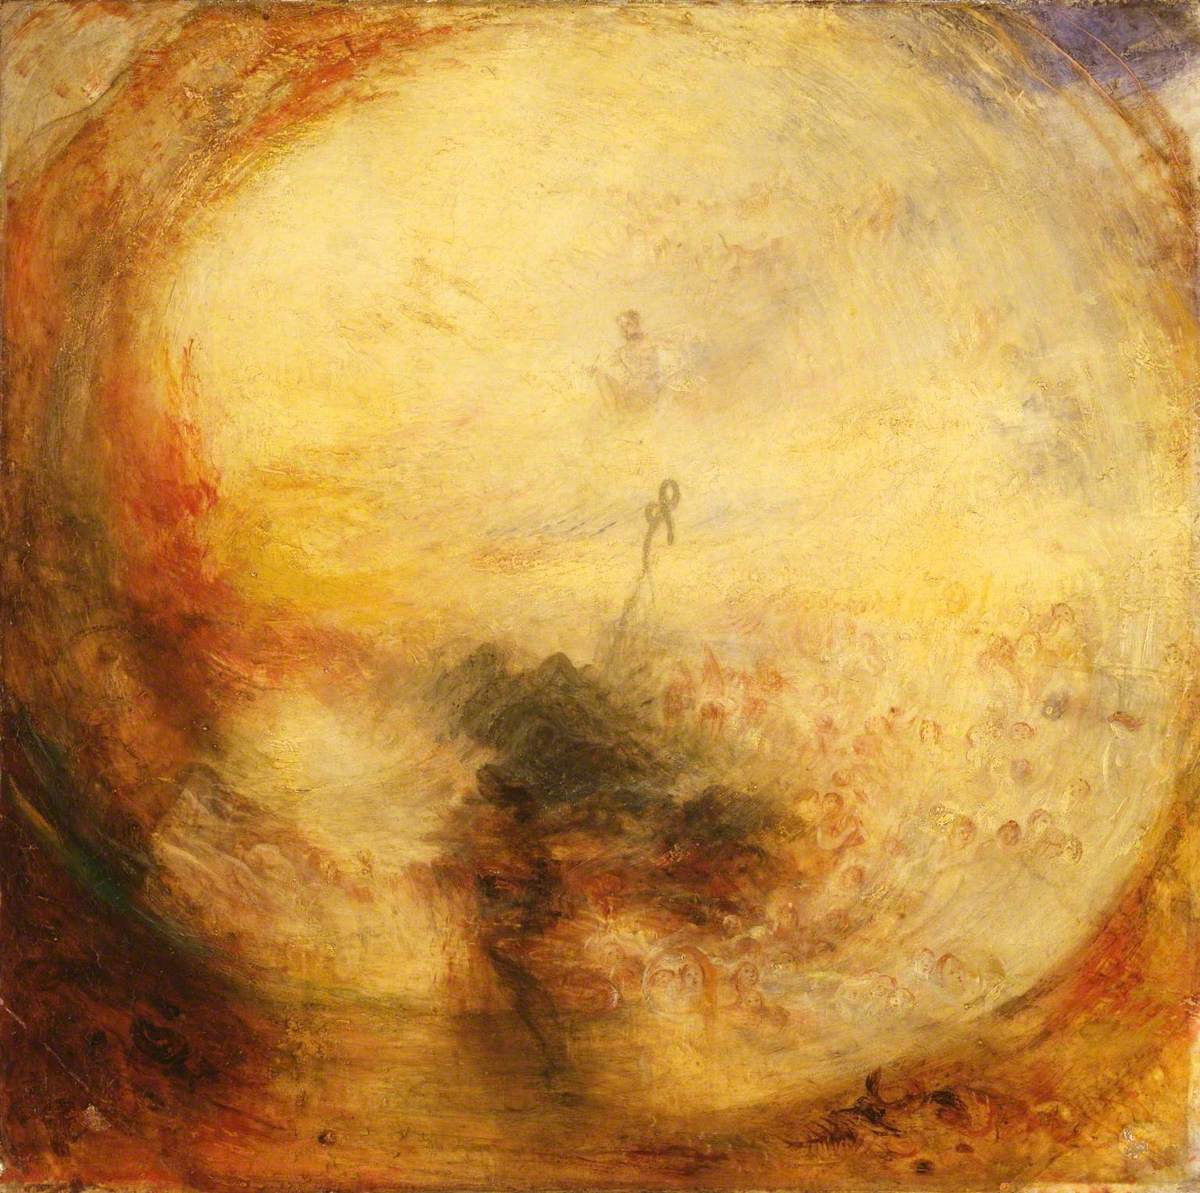 Light and Colour (Goethe's Theory) - the Morning after the Deluge - Moses Writing the Book of Genesis